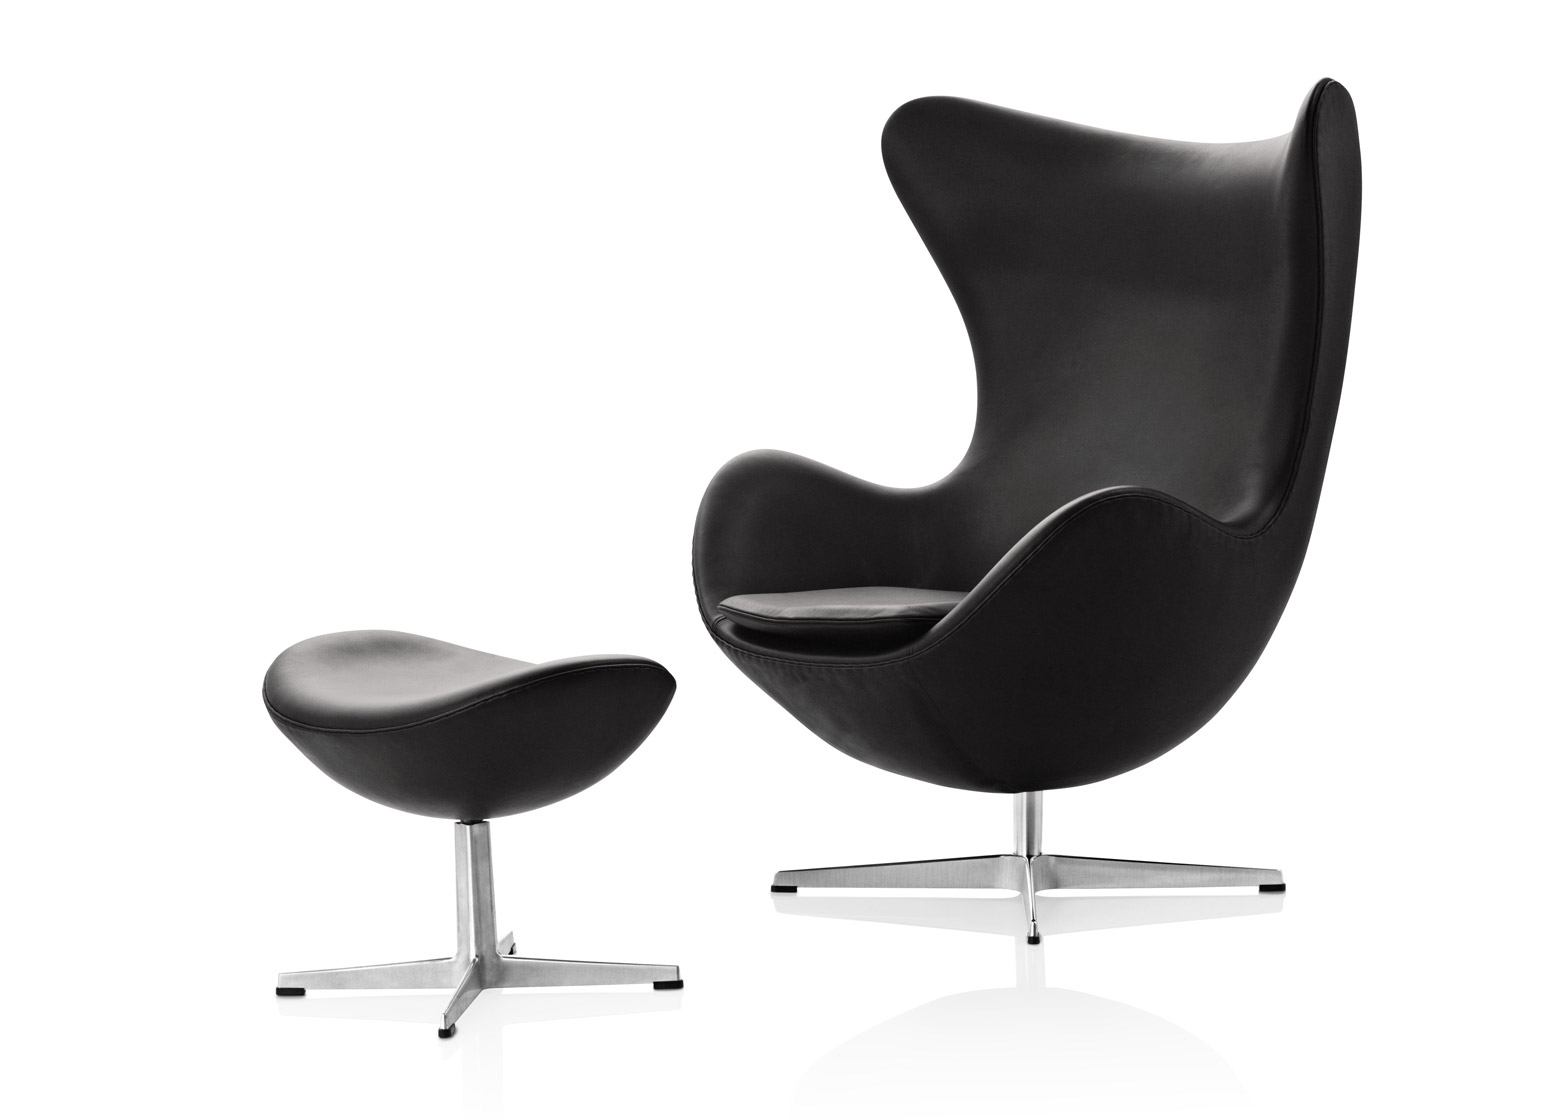 fritz hansen sessel ro 10, 10 popular furniture replicas that are now outlawed by uk copyright, Design ideen